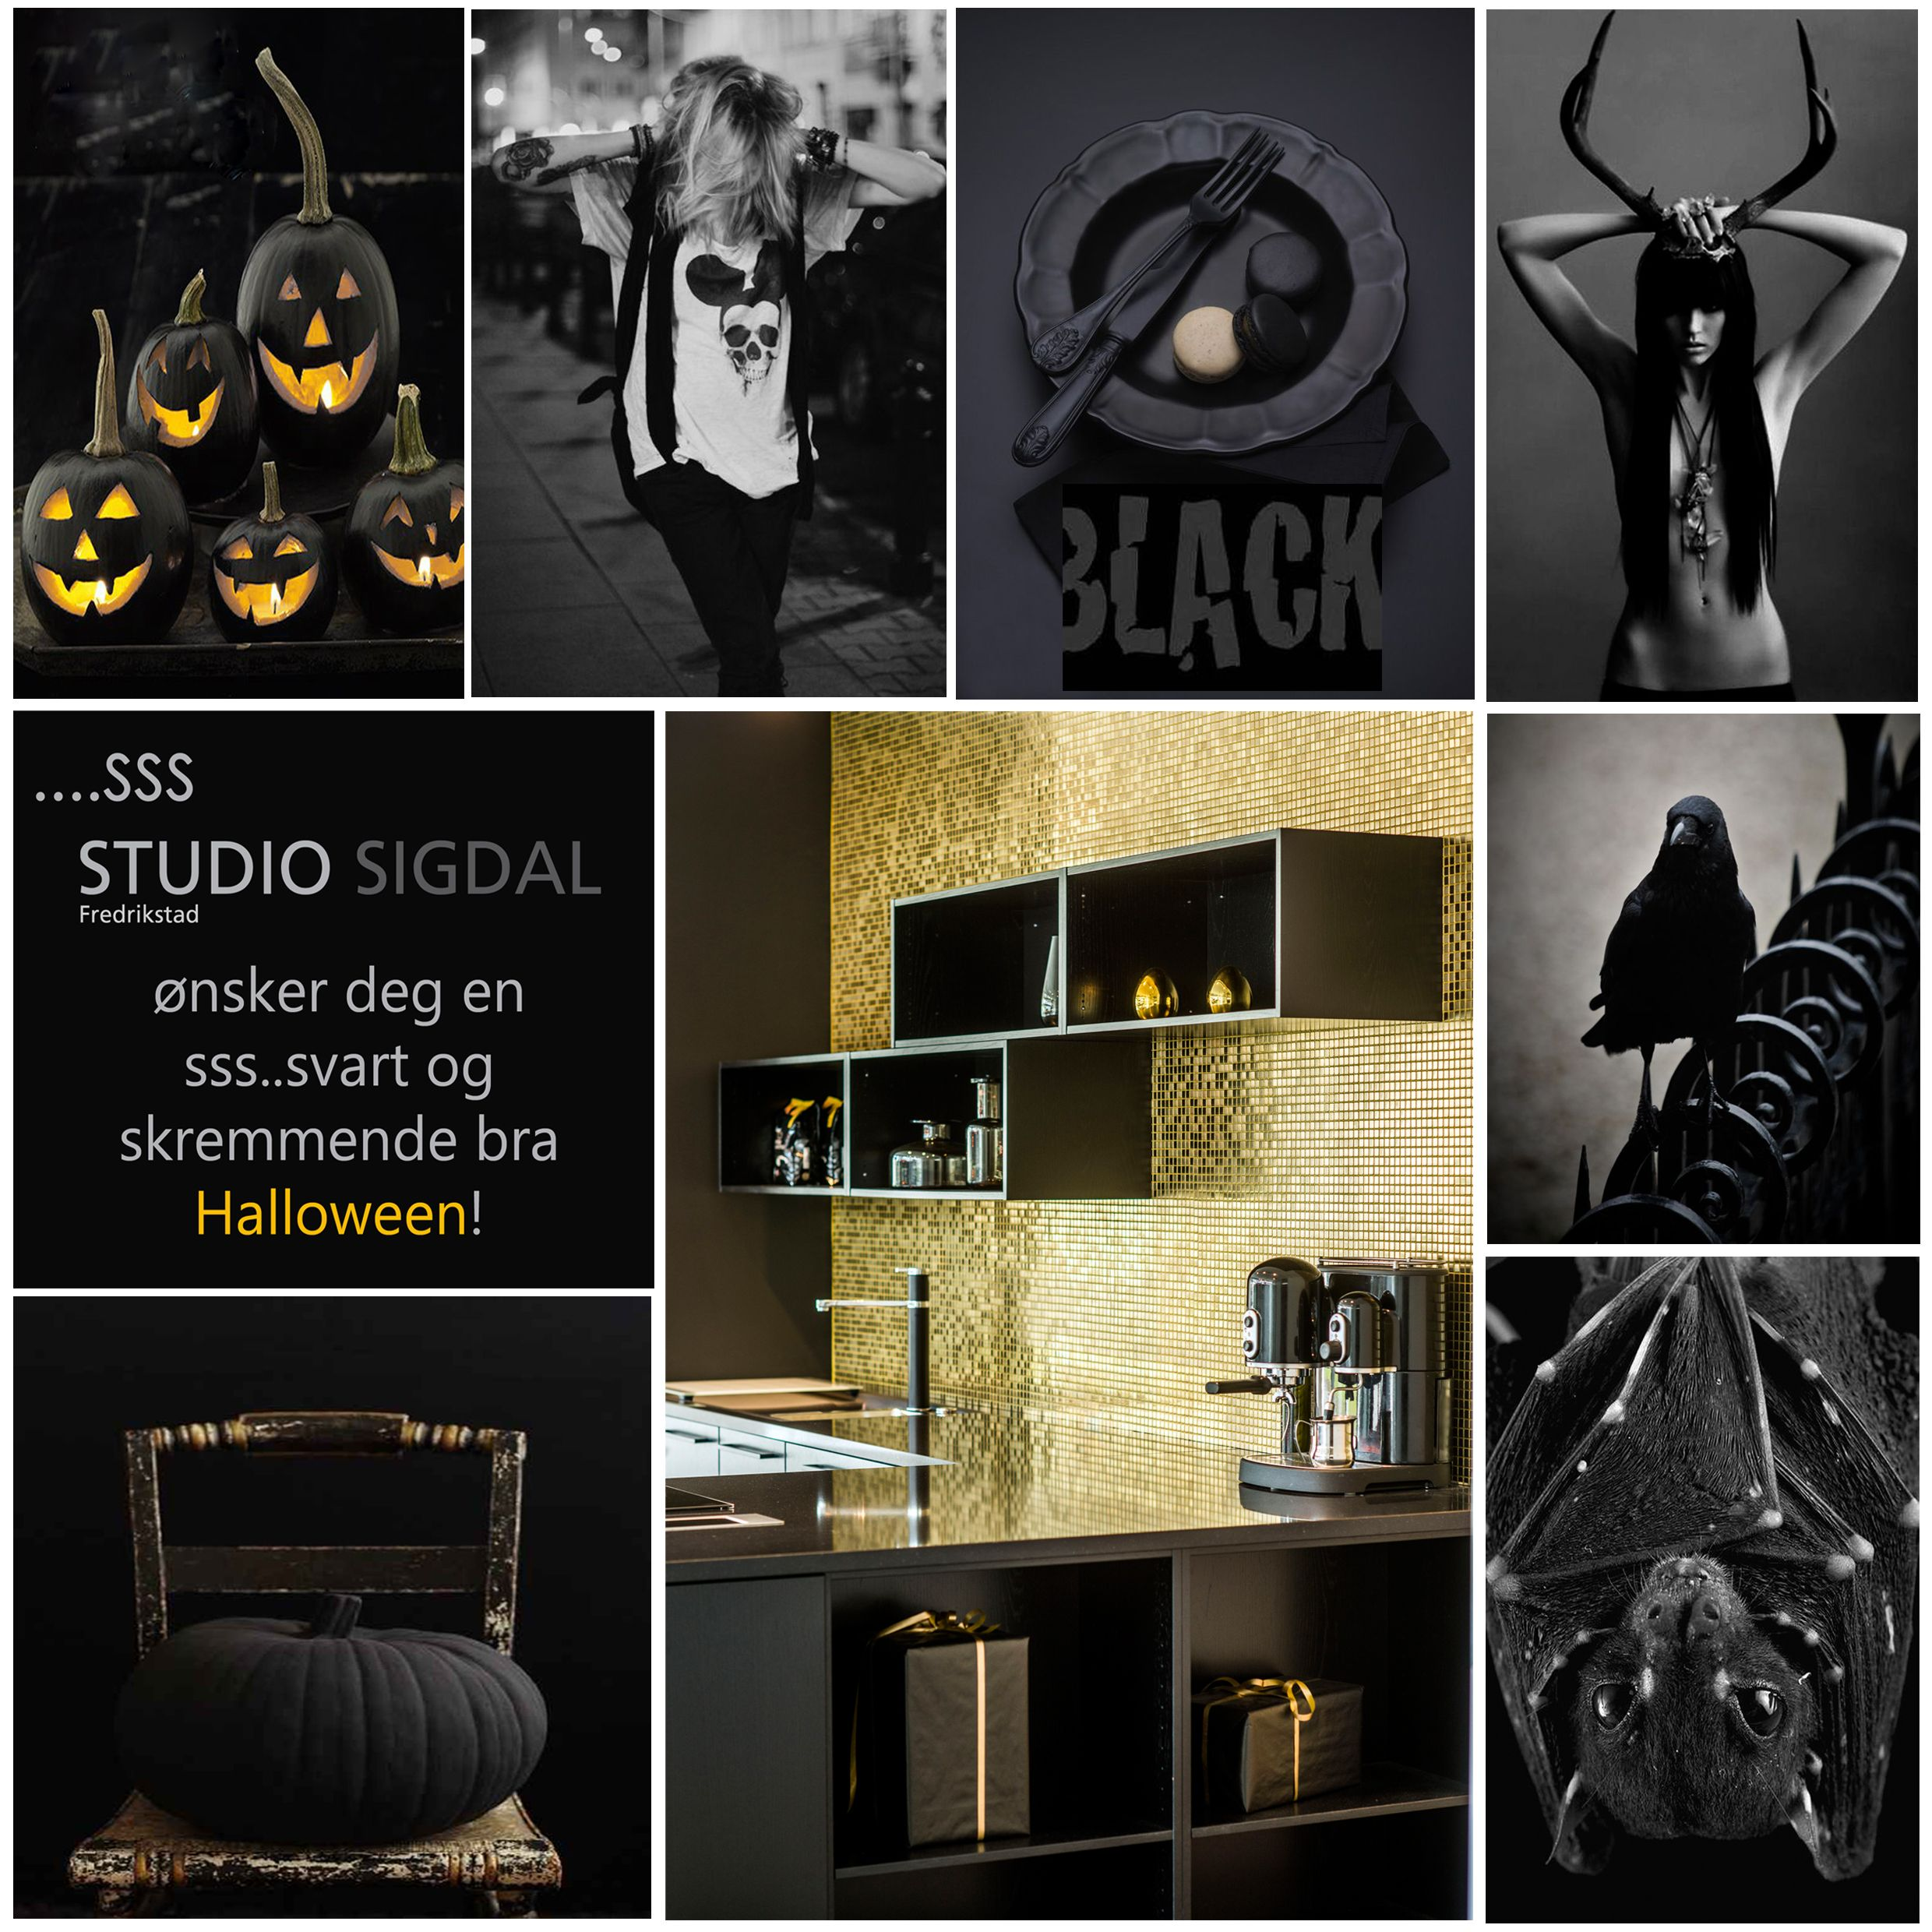 Moodboard made for Halloween. Design: Nina Th. Oppedal